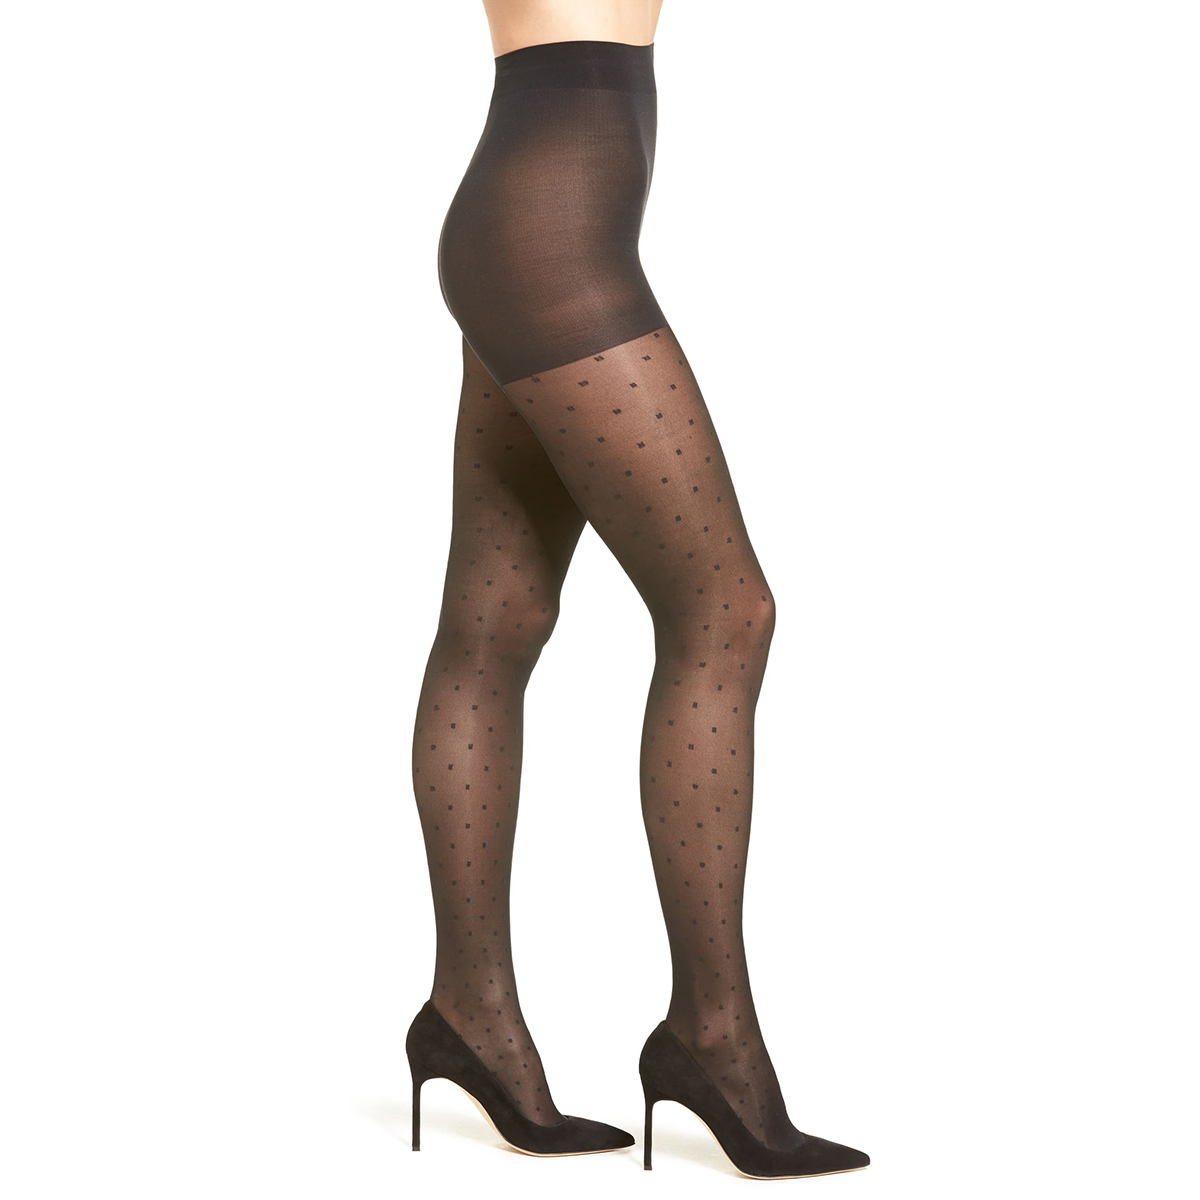 Calzedonia Womens Sheer Polka Dot Tights